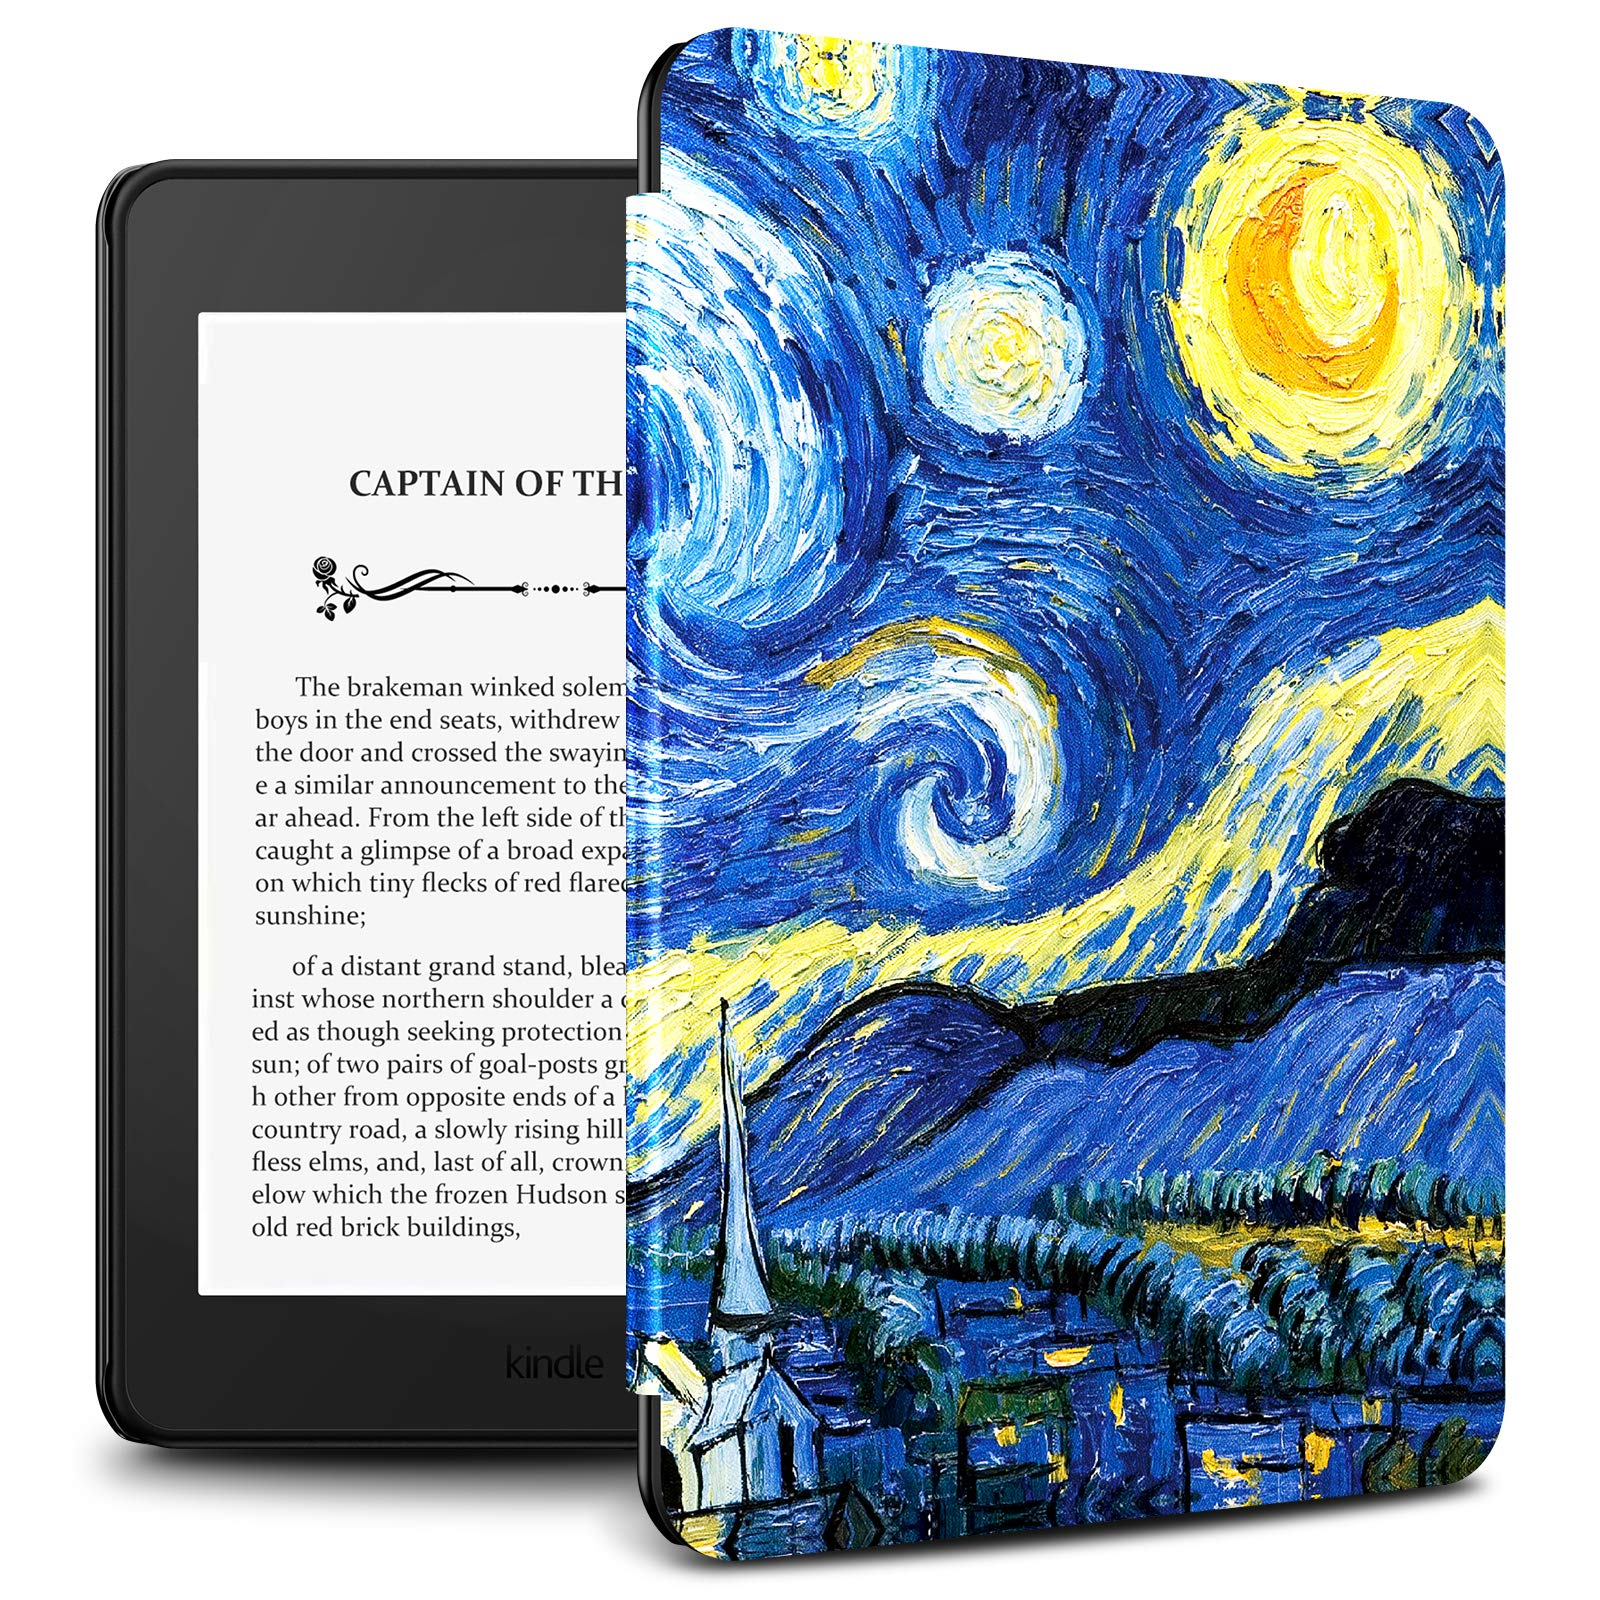 Infiland Kindle Paperwhite 2018 Case Compatible with Amazon Kindle Paperwhite 10th Generation 6 inches 2018 Release(Auto Wake/Sleep),Starry Night